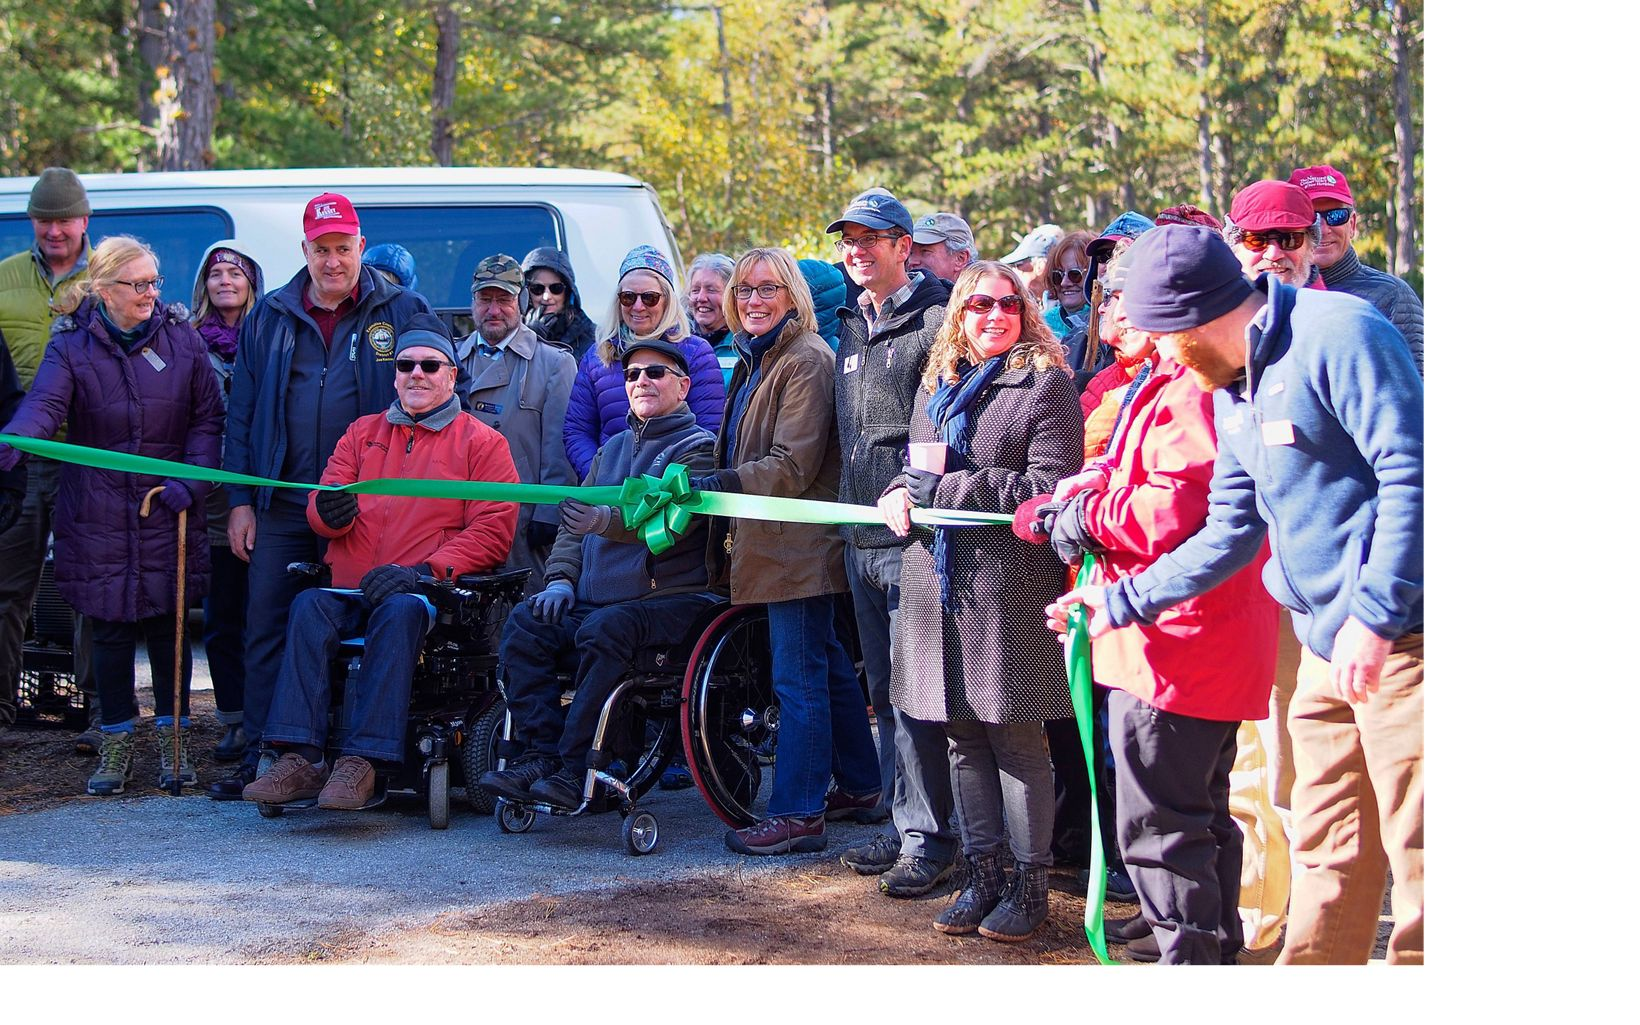 U.S. Senator Maggie Hassan and NH State Director Mark Zankel help in cutting the ribbon to open a new accessible trail at the Ossipee Pine Barrens Preserve.